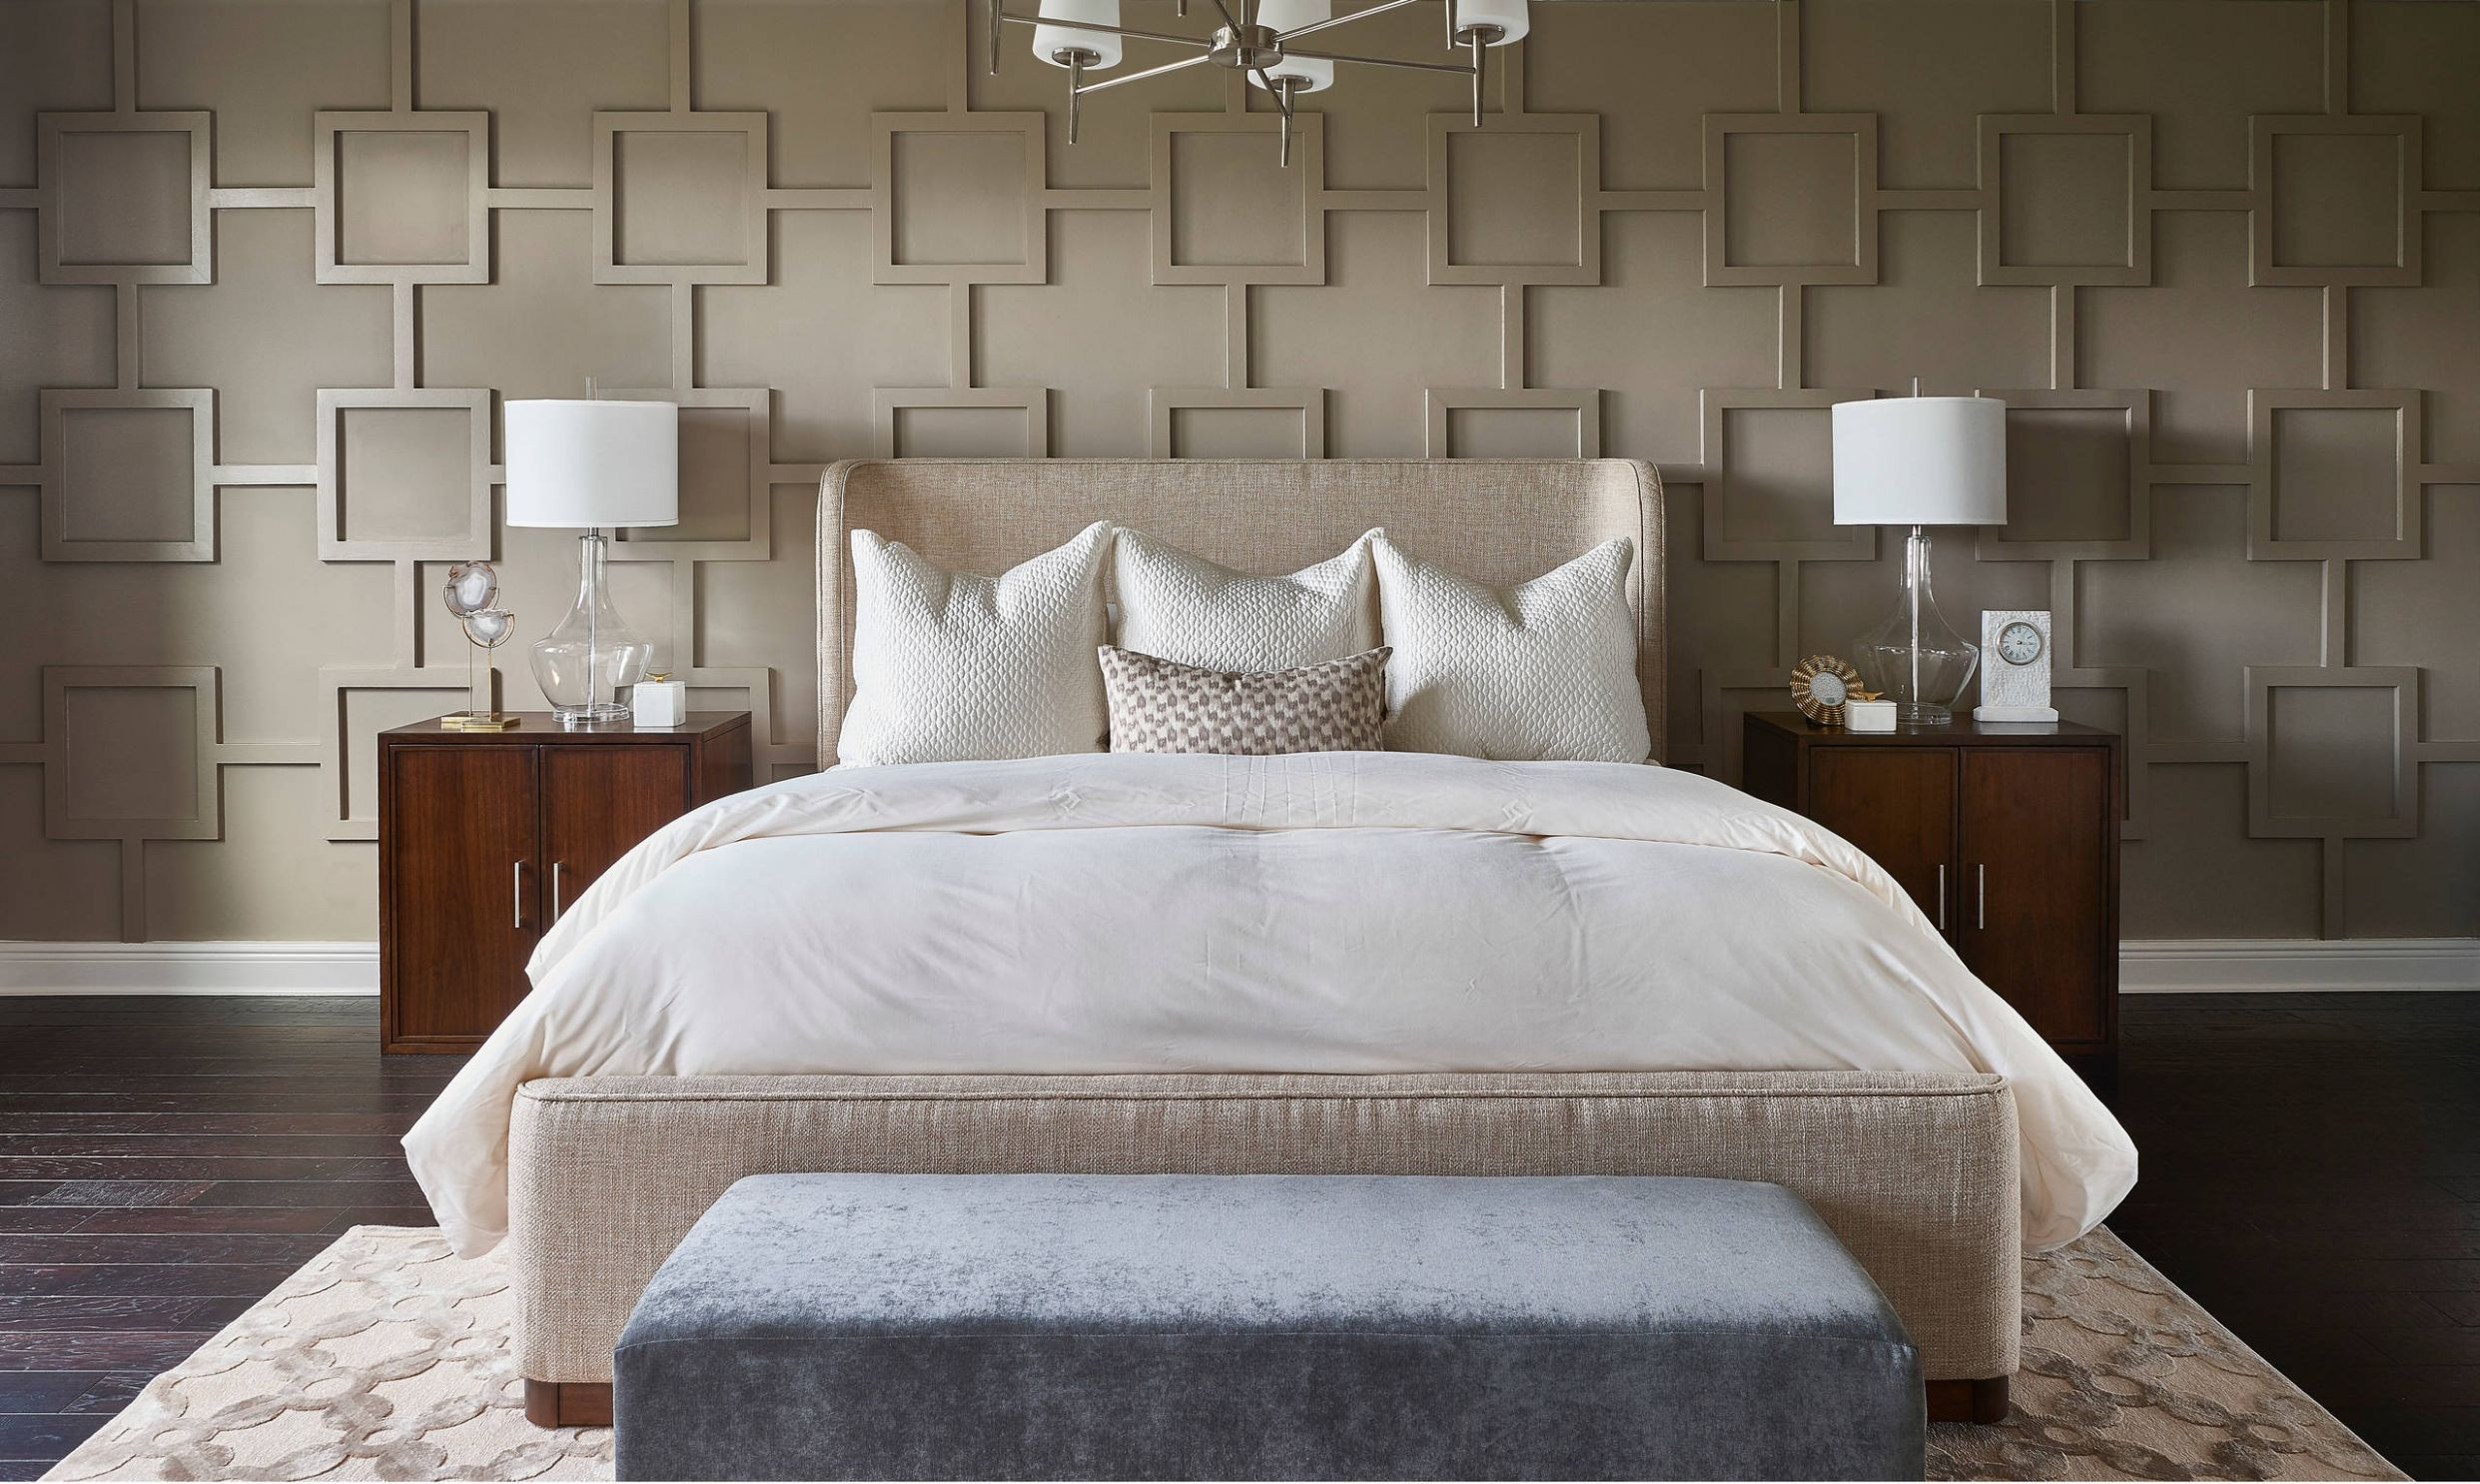 10 Ideas For Your Next Bedroom - Home Awakening - bedroom ideas next